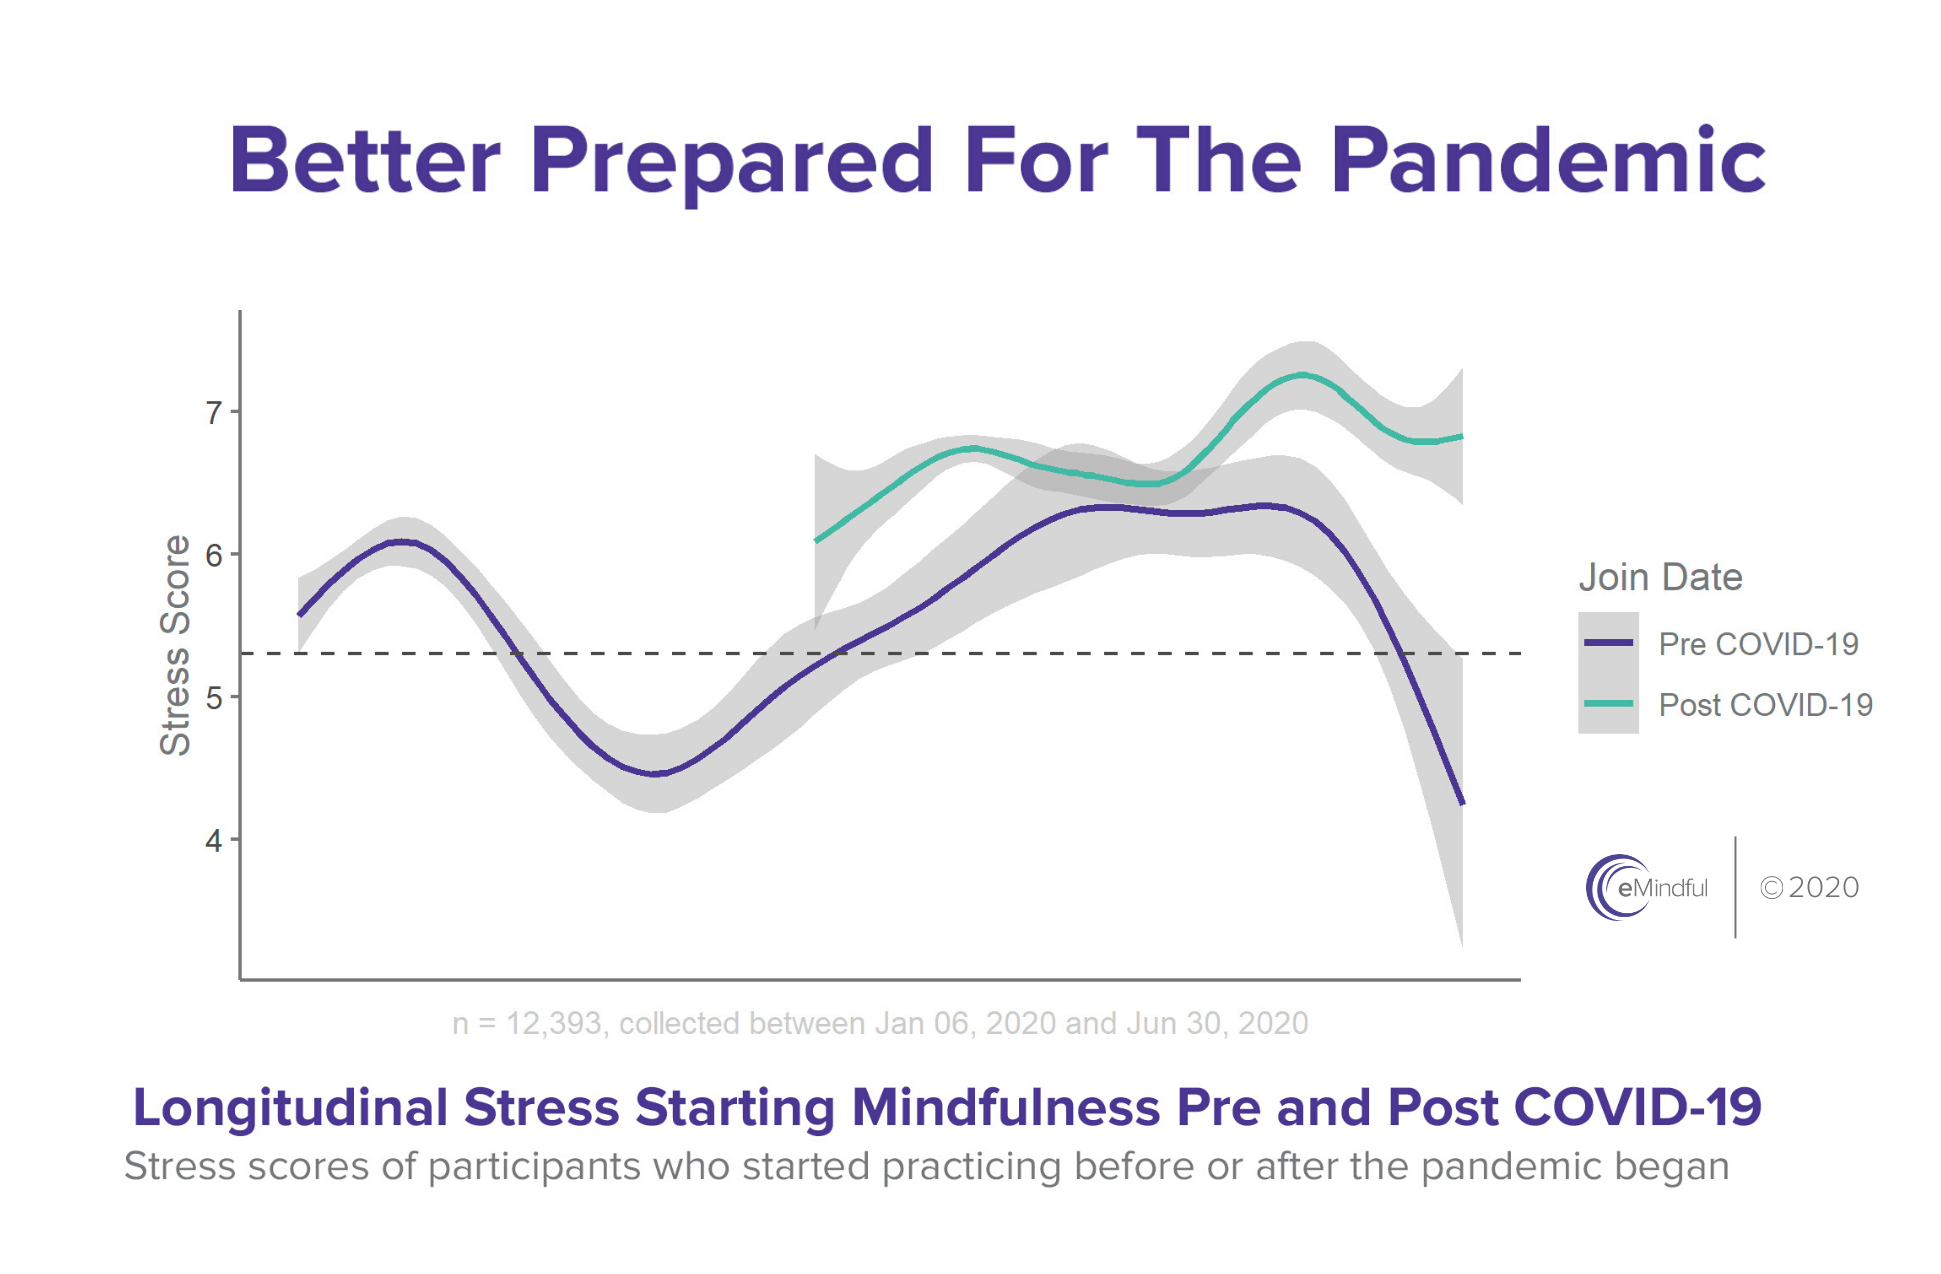 Data Proves Practicing Mindfulness Prior to COVID-19 Mitigated Stress of the Pandemic | emindful.com